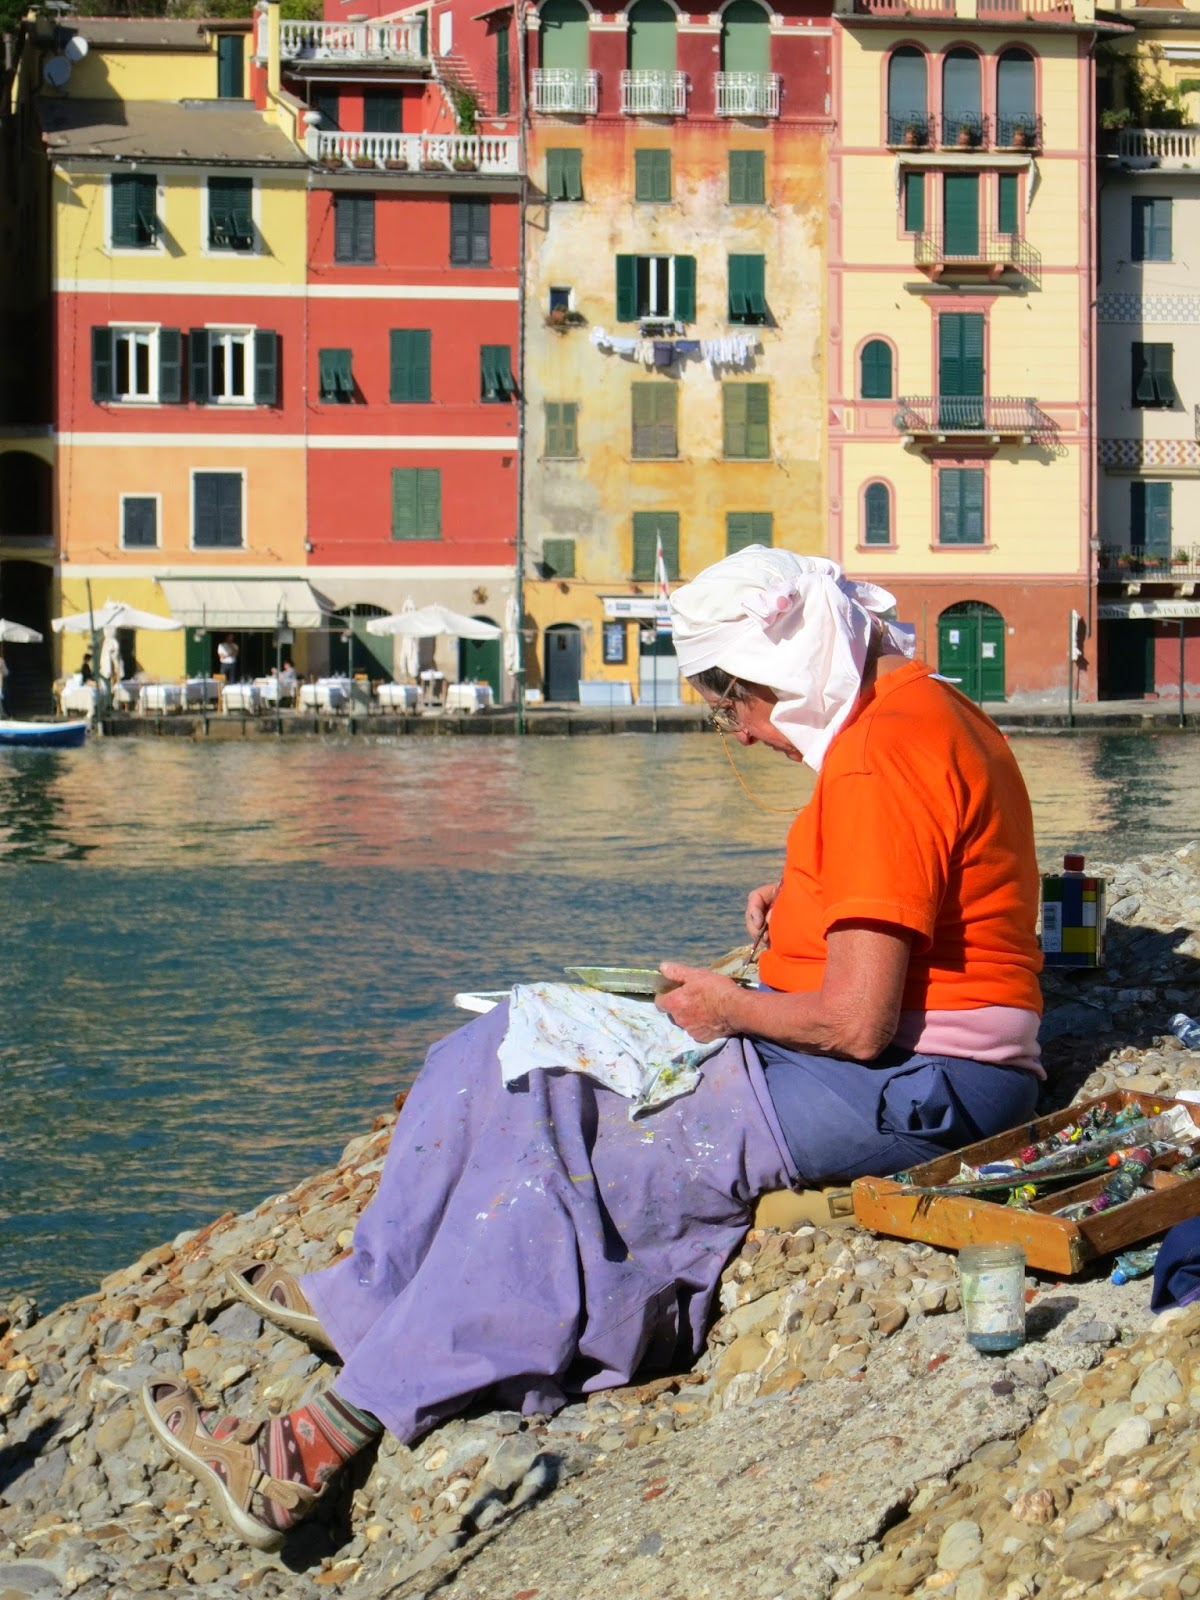 Local Artist Painting in Portofino Harbor